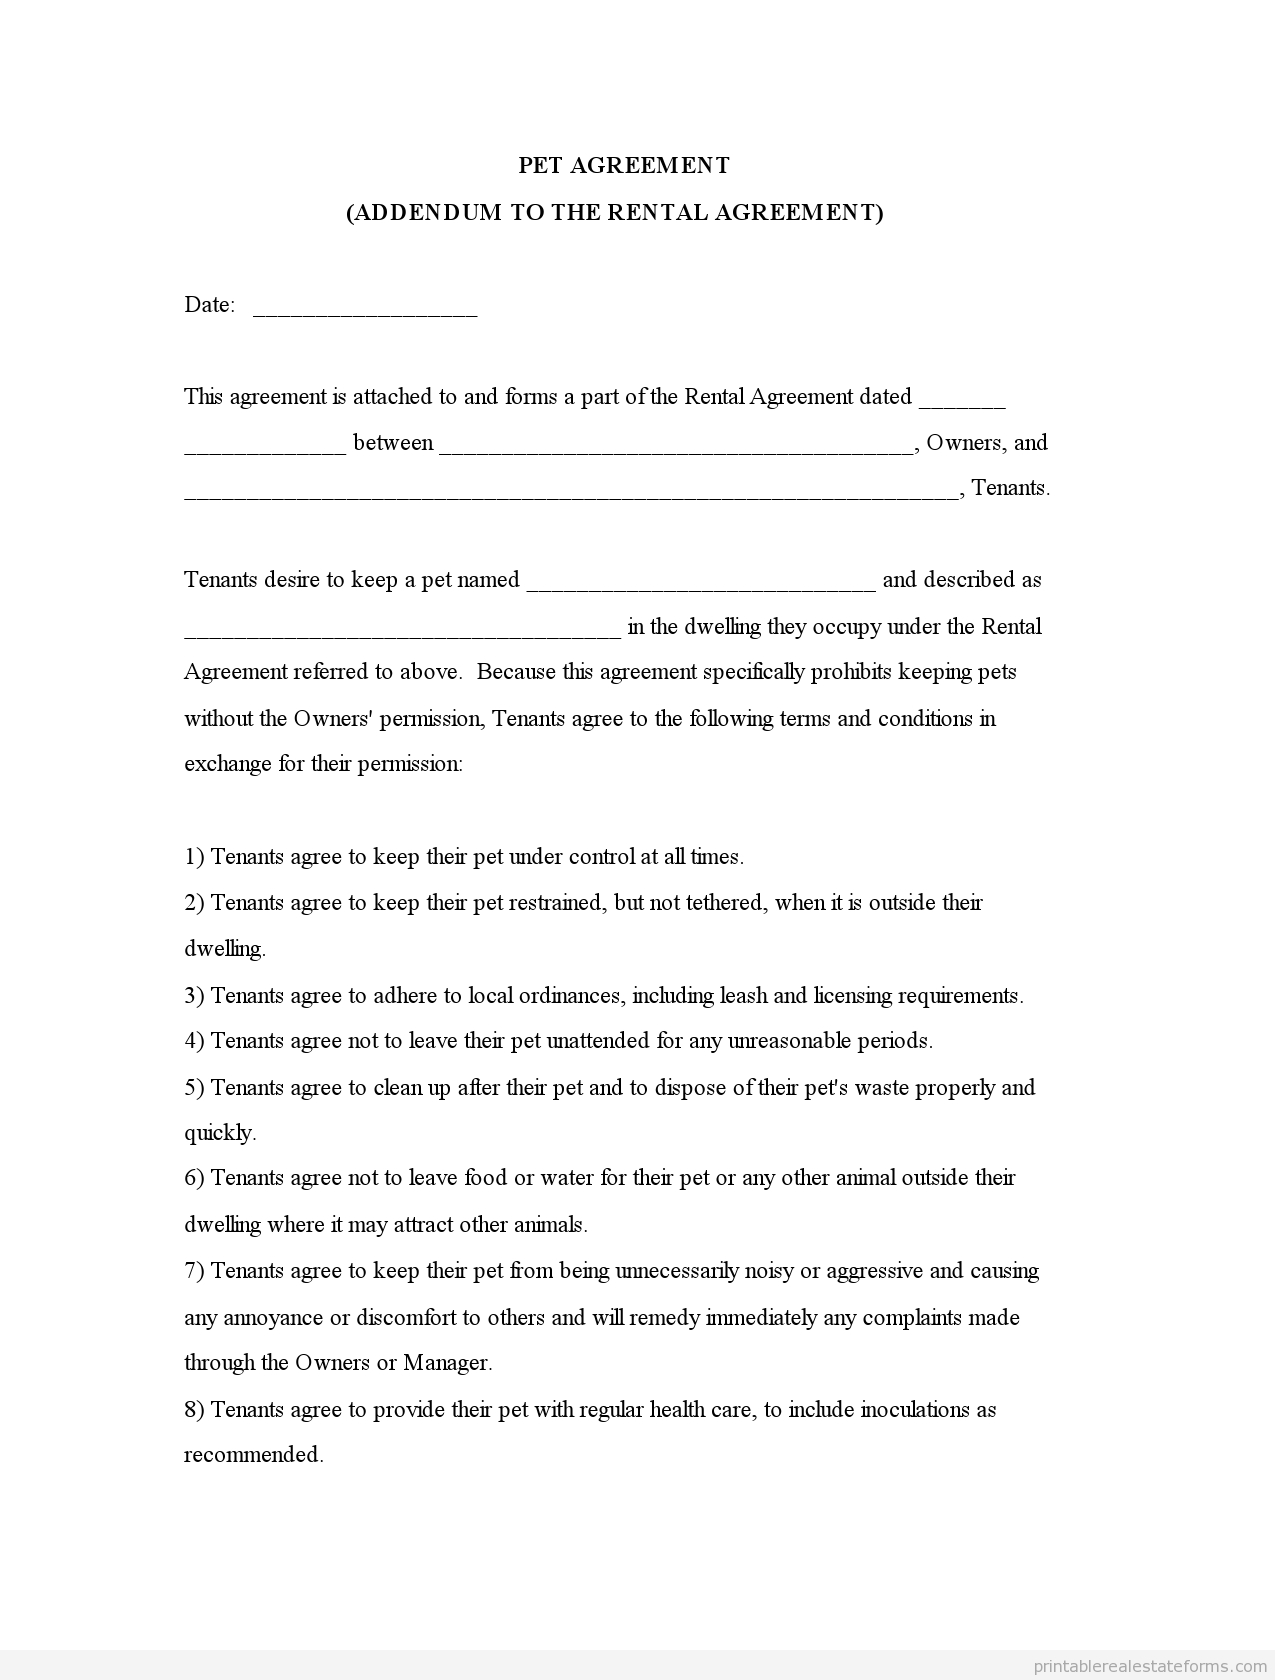 Sample Printable Pet Agreementm Addendum To The Rental Agreement - Free Printable Pet Addendum